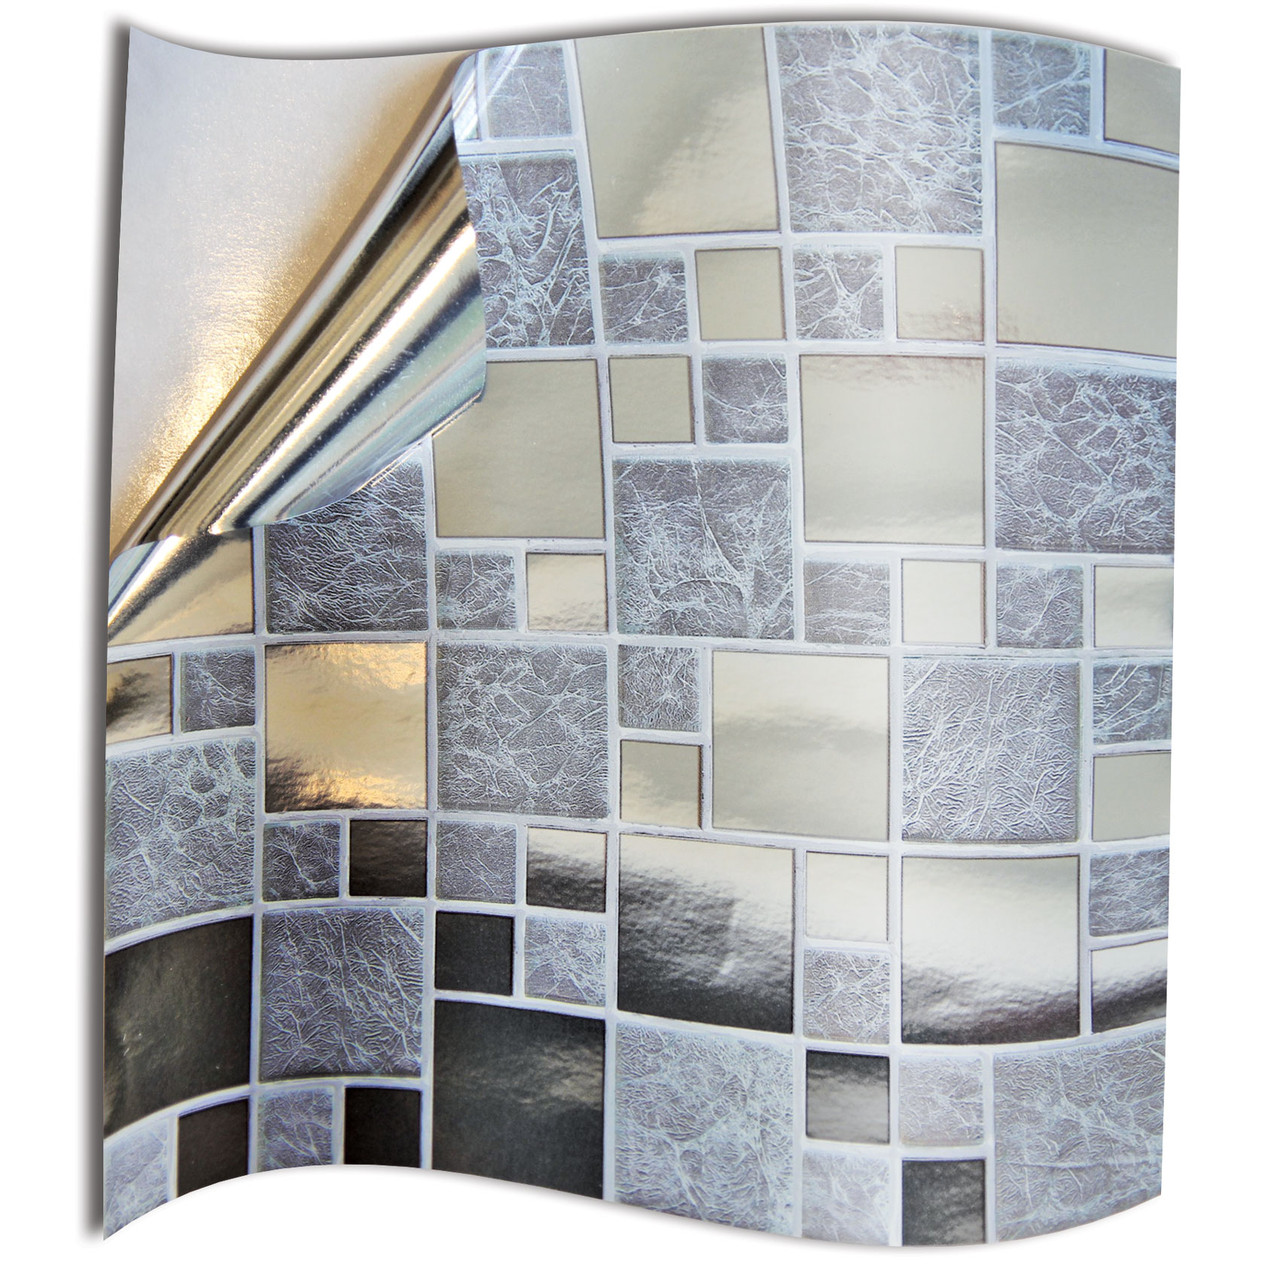 24 Silver Chrome Shiny Removable Kitchen Tile Stickers Bathroom Tile Covers 6 Inch 150 X 150mm